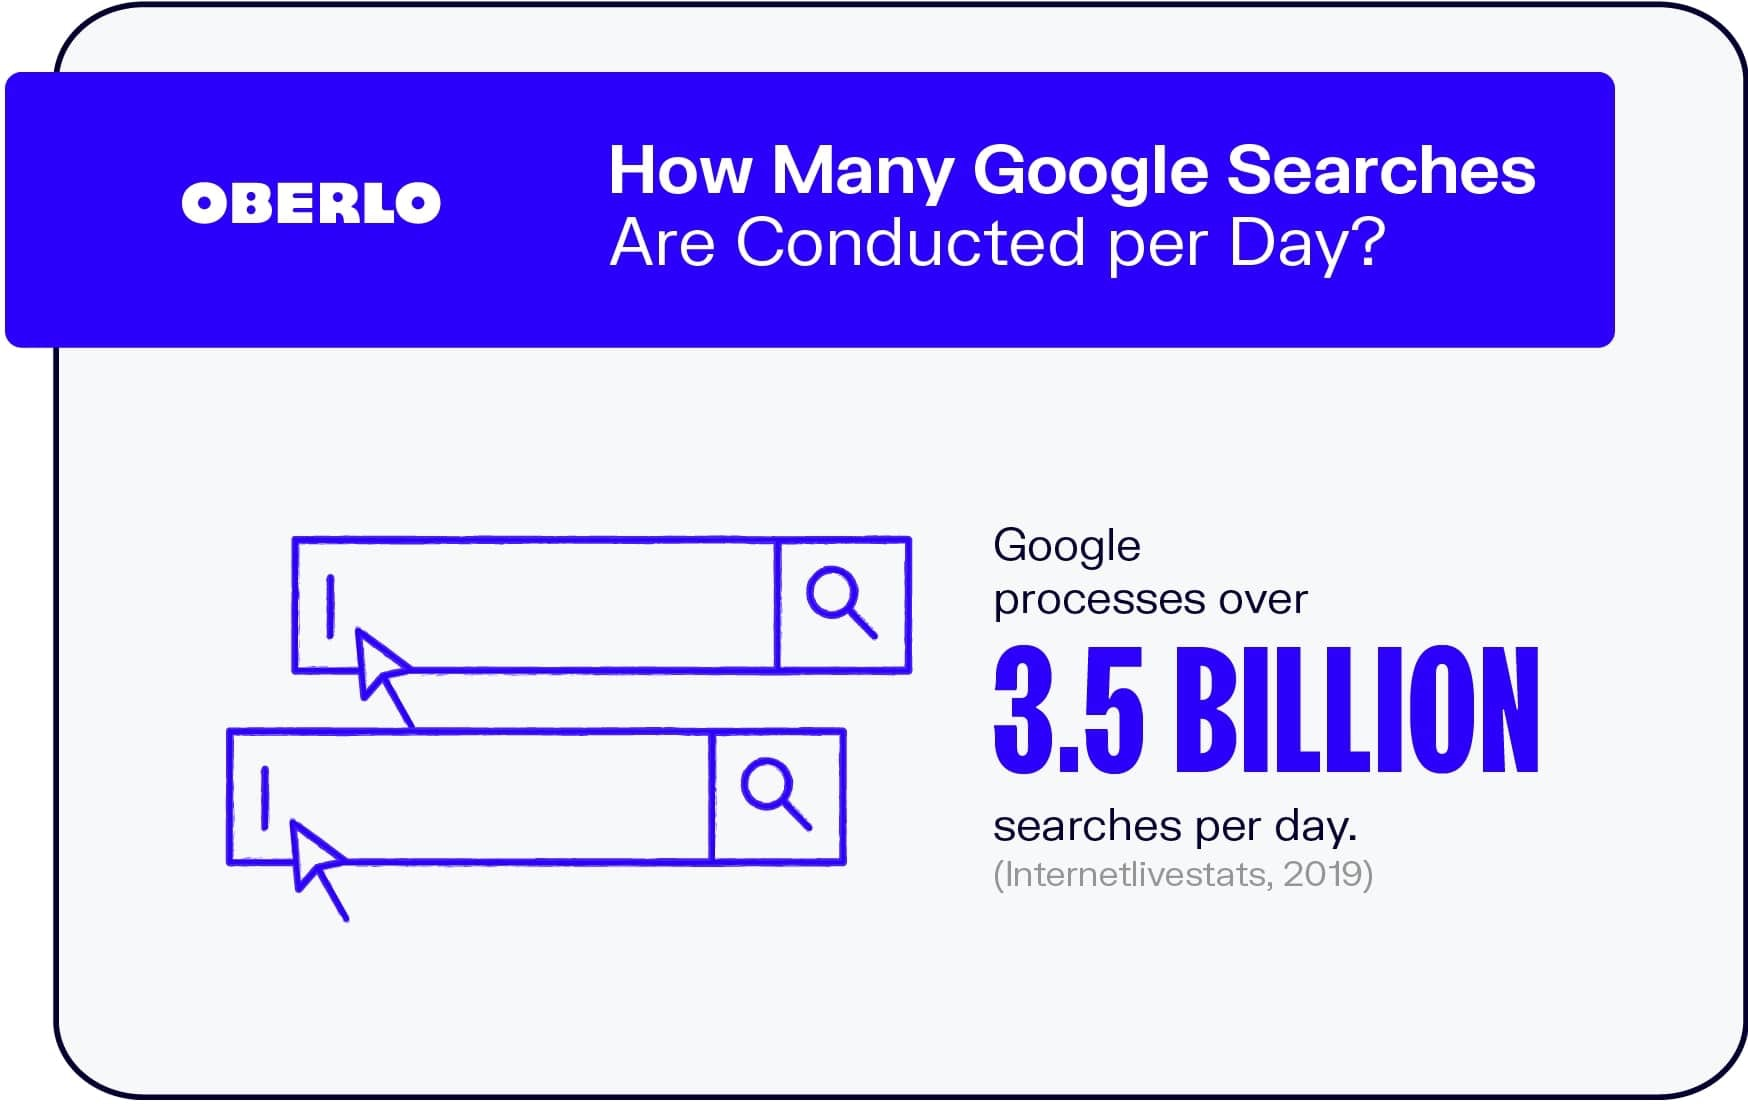 How Many Google Searches Are Conducted per Day?